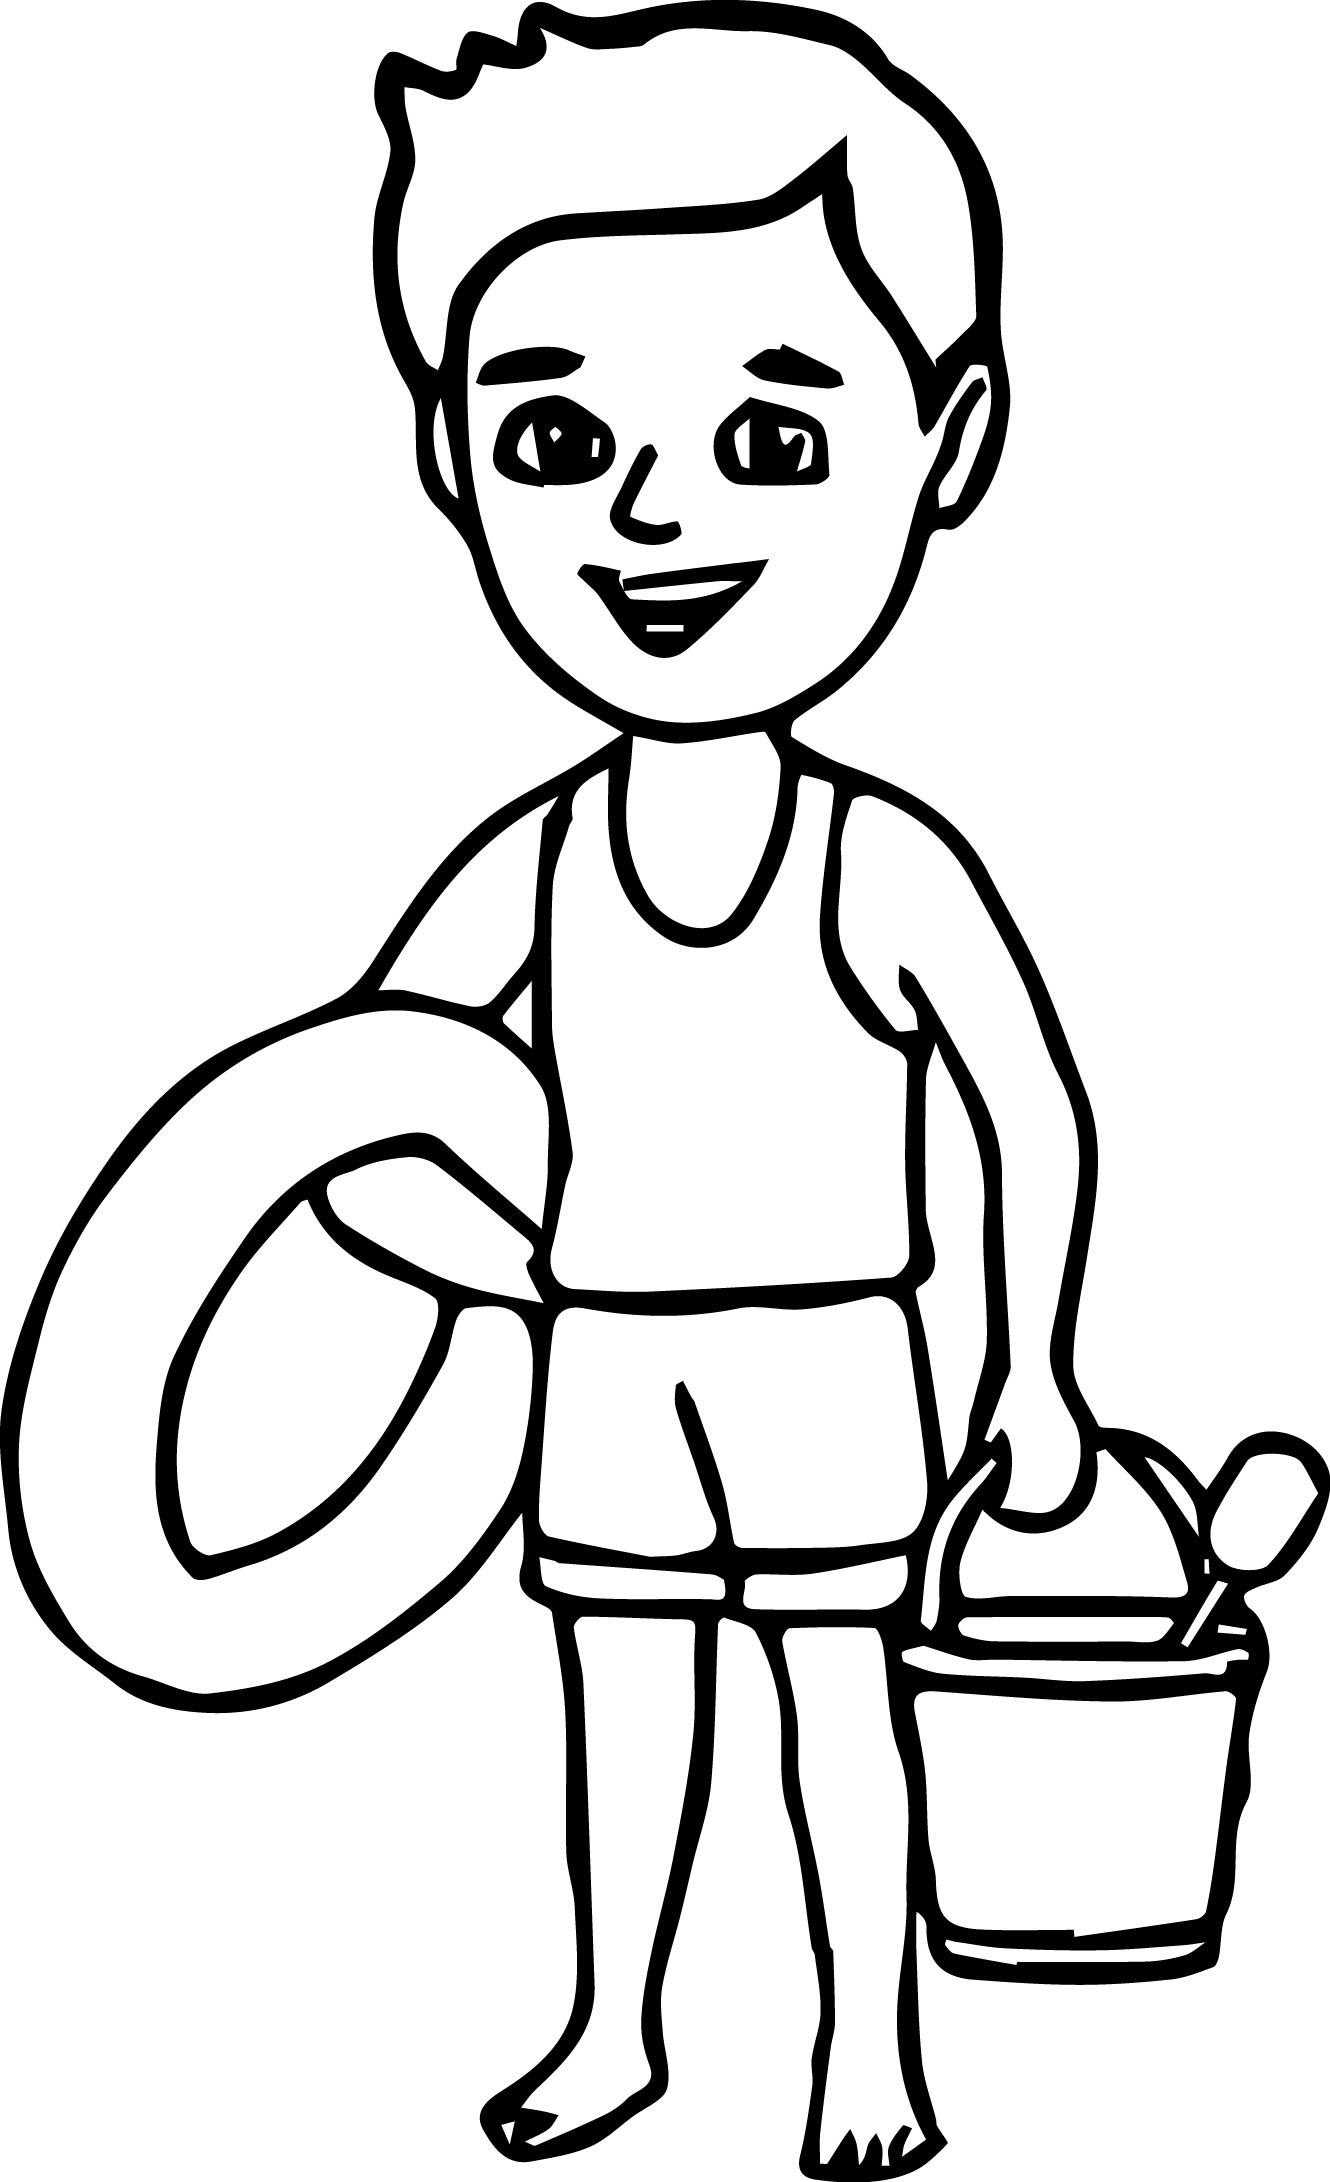 coloring pages kids boys - photo#35